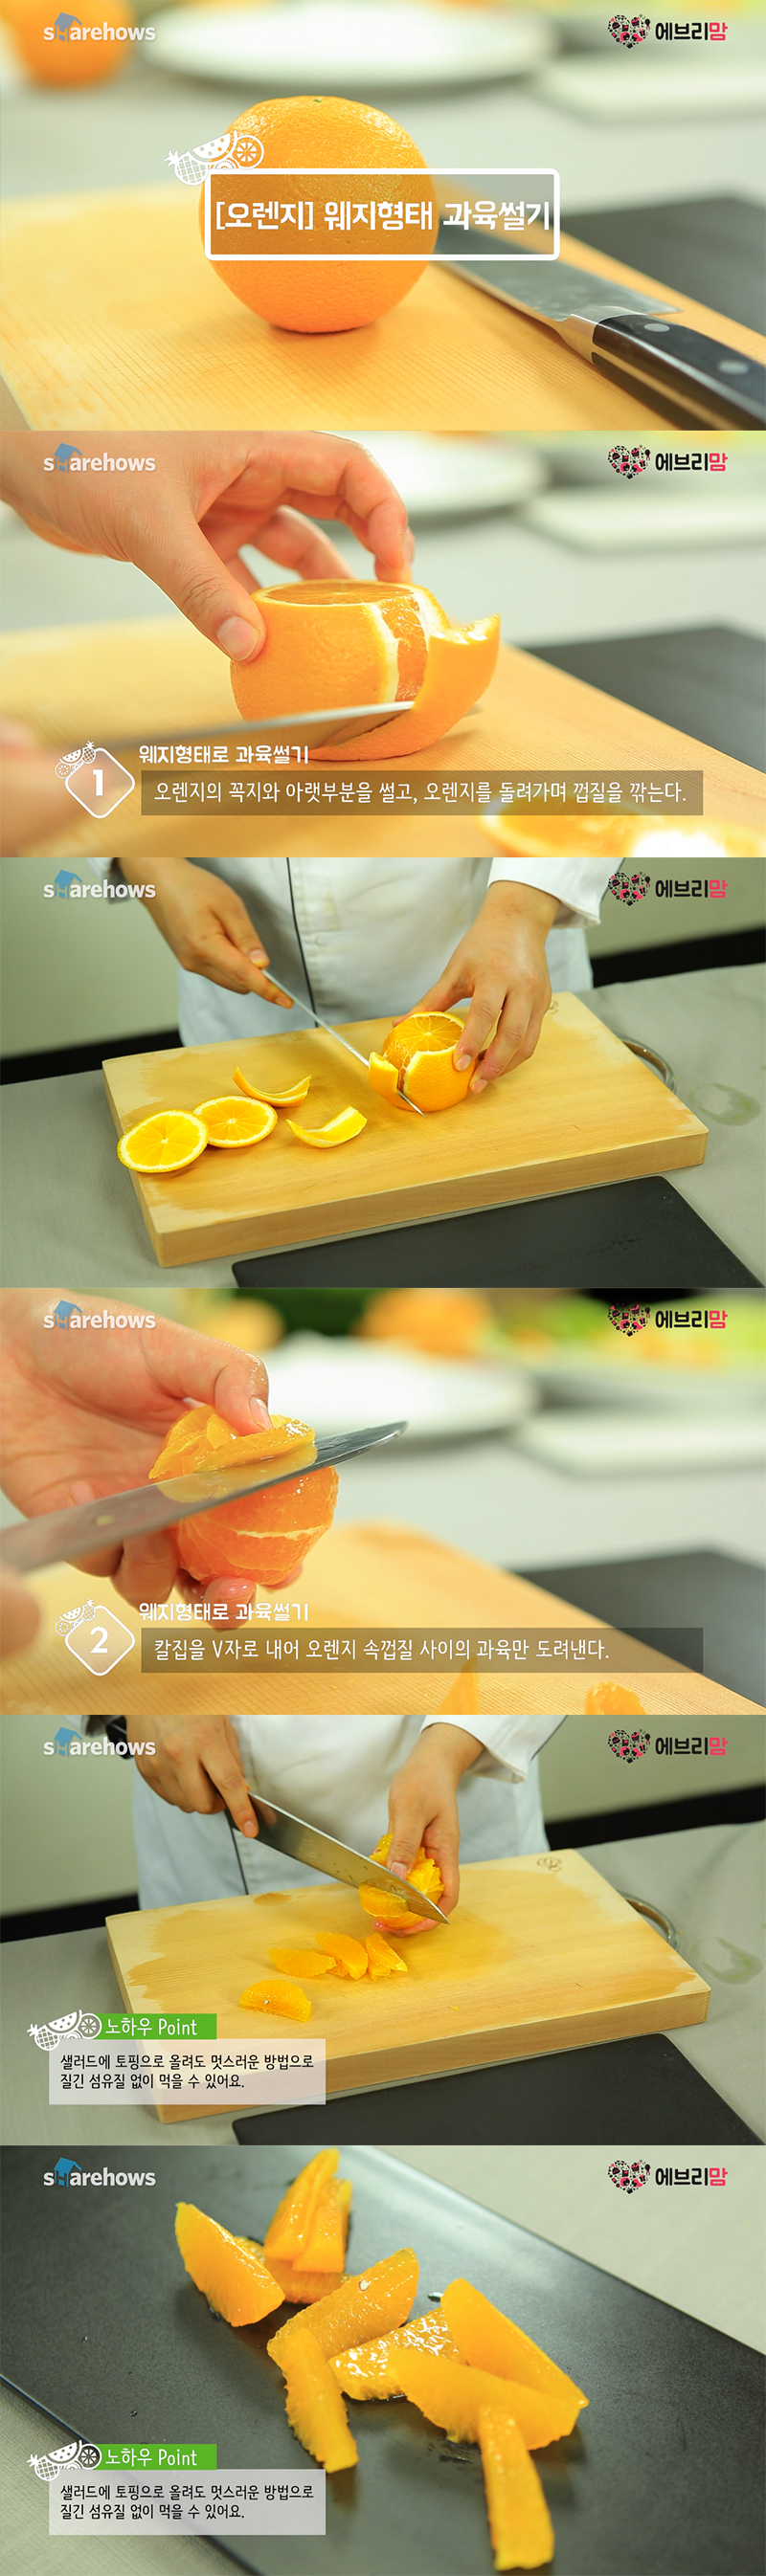 how-to-cut-orange 02